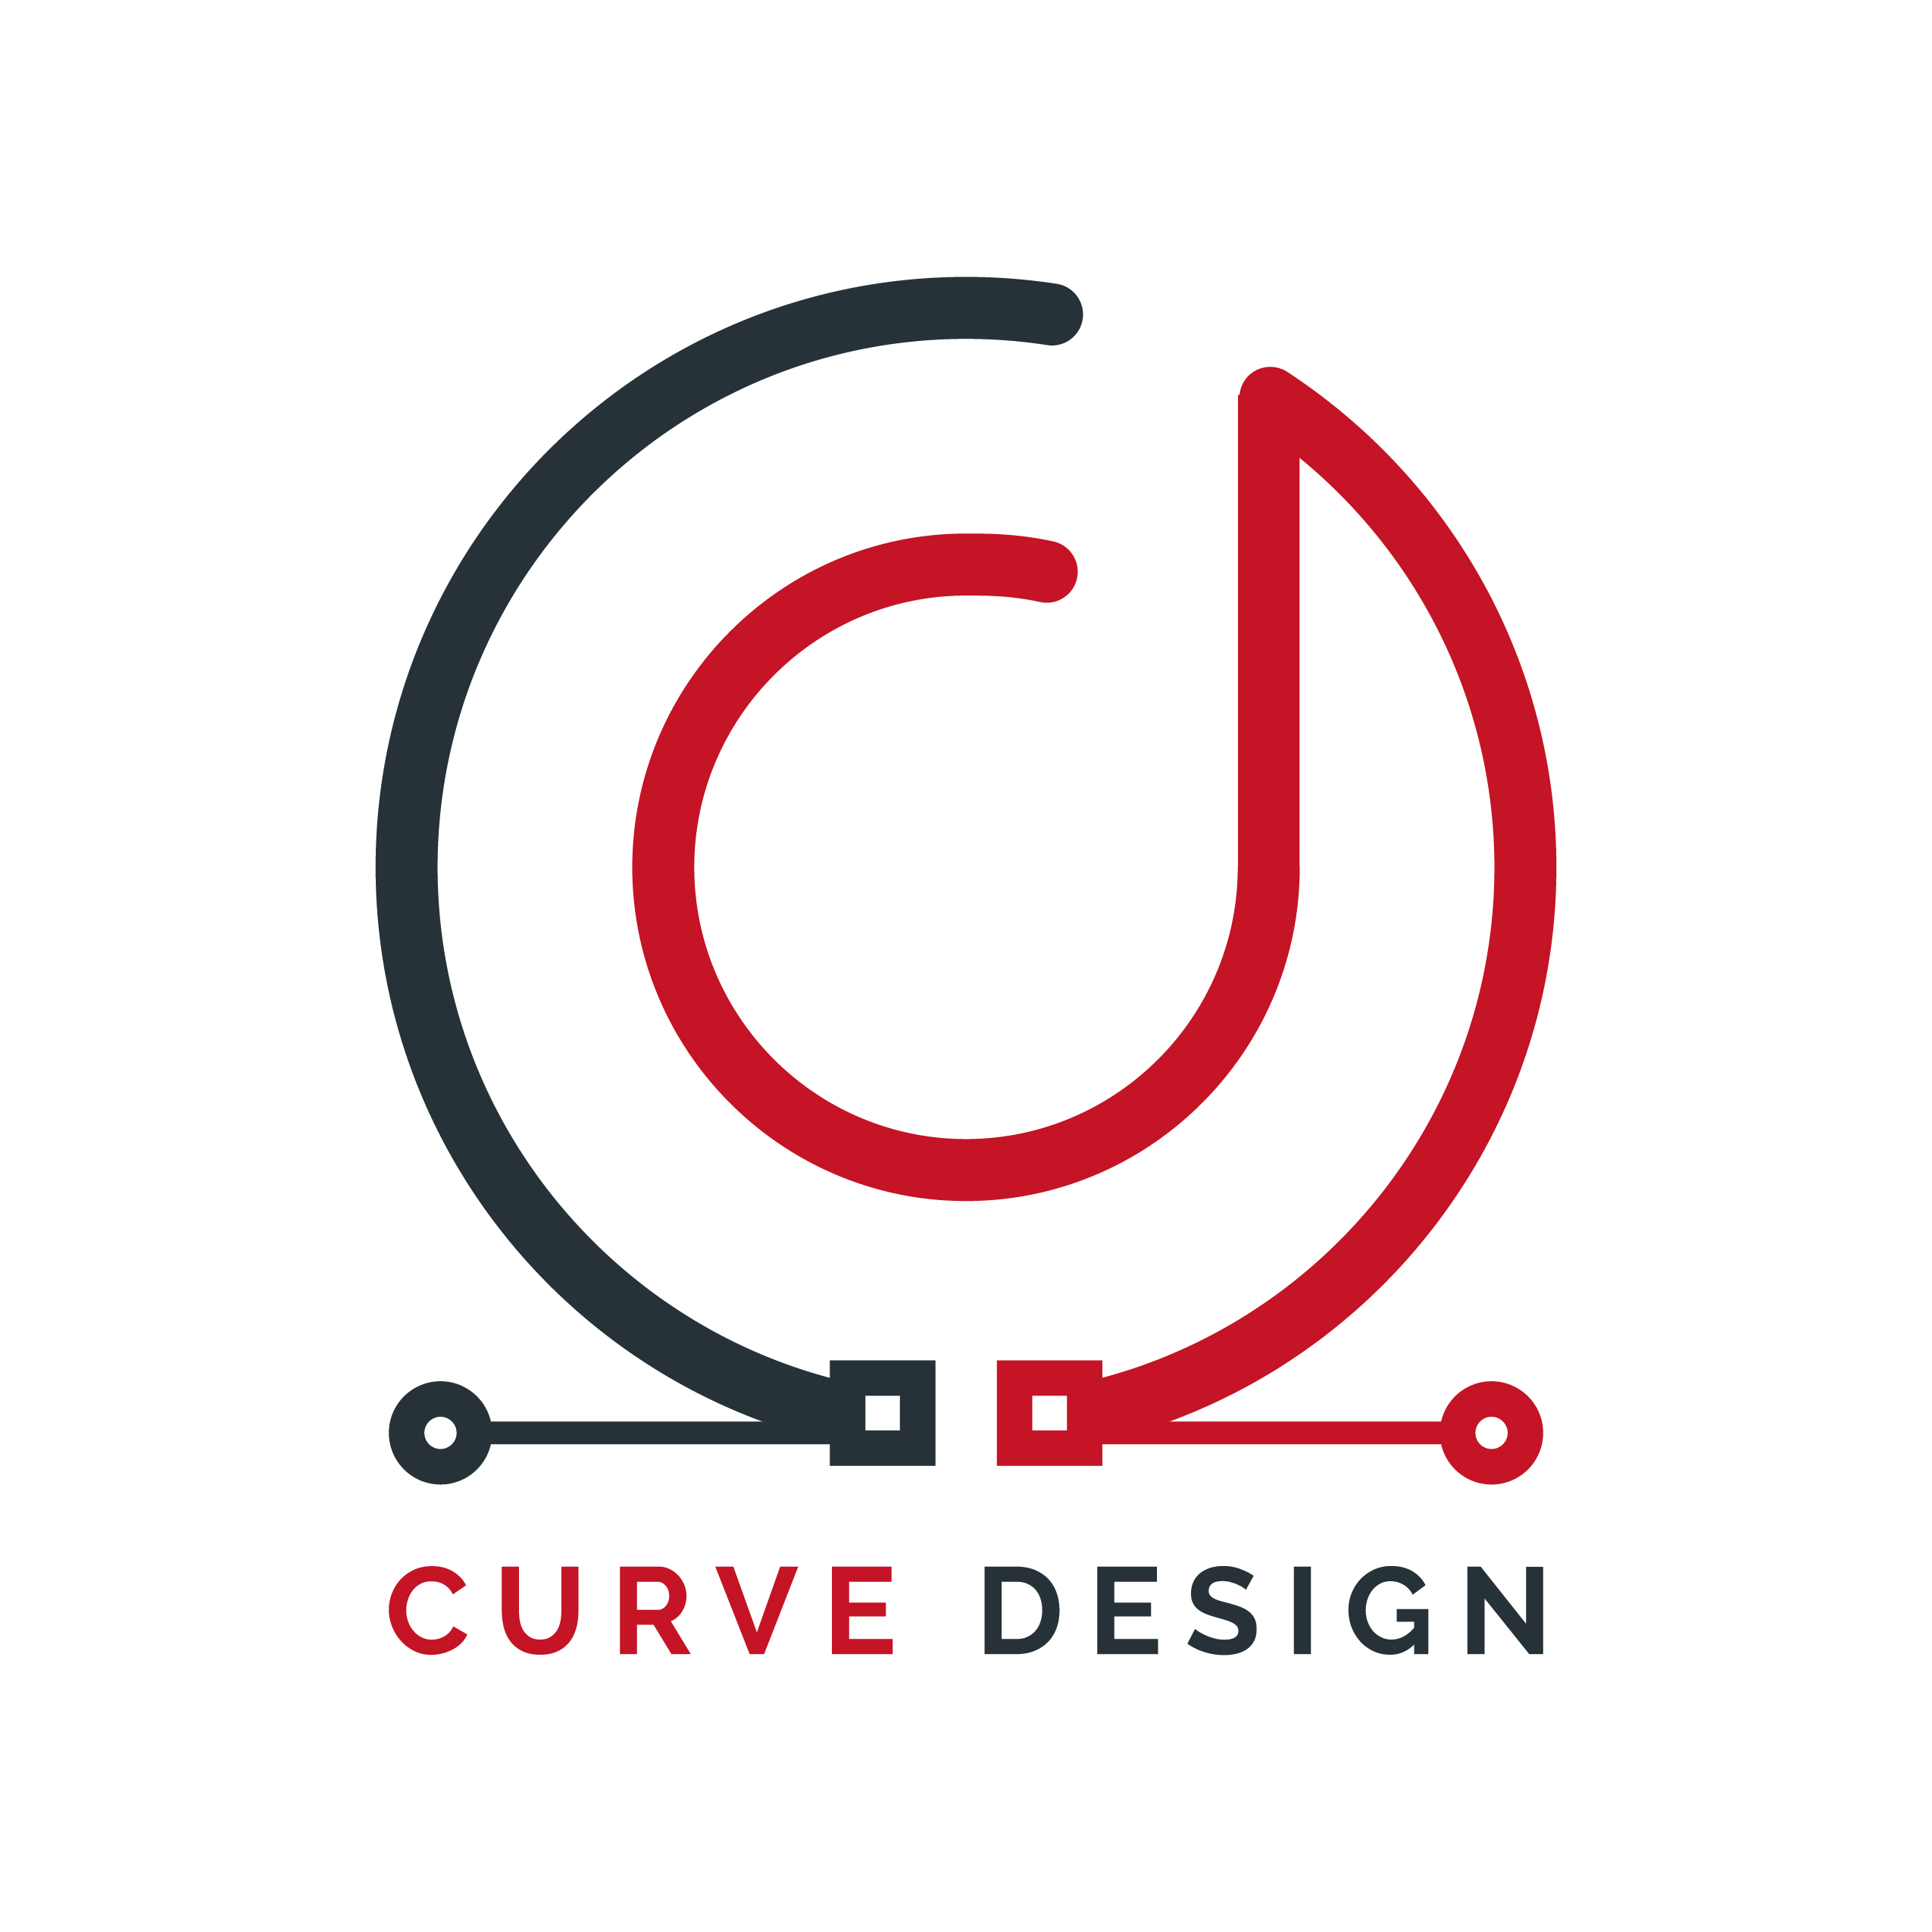 Curvedesign's profile picture